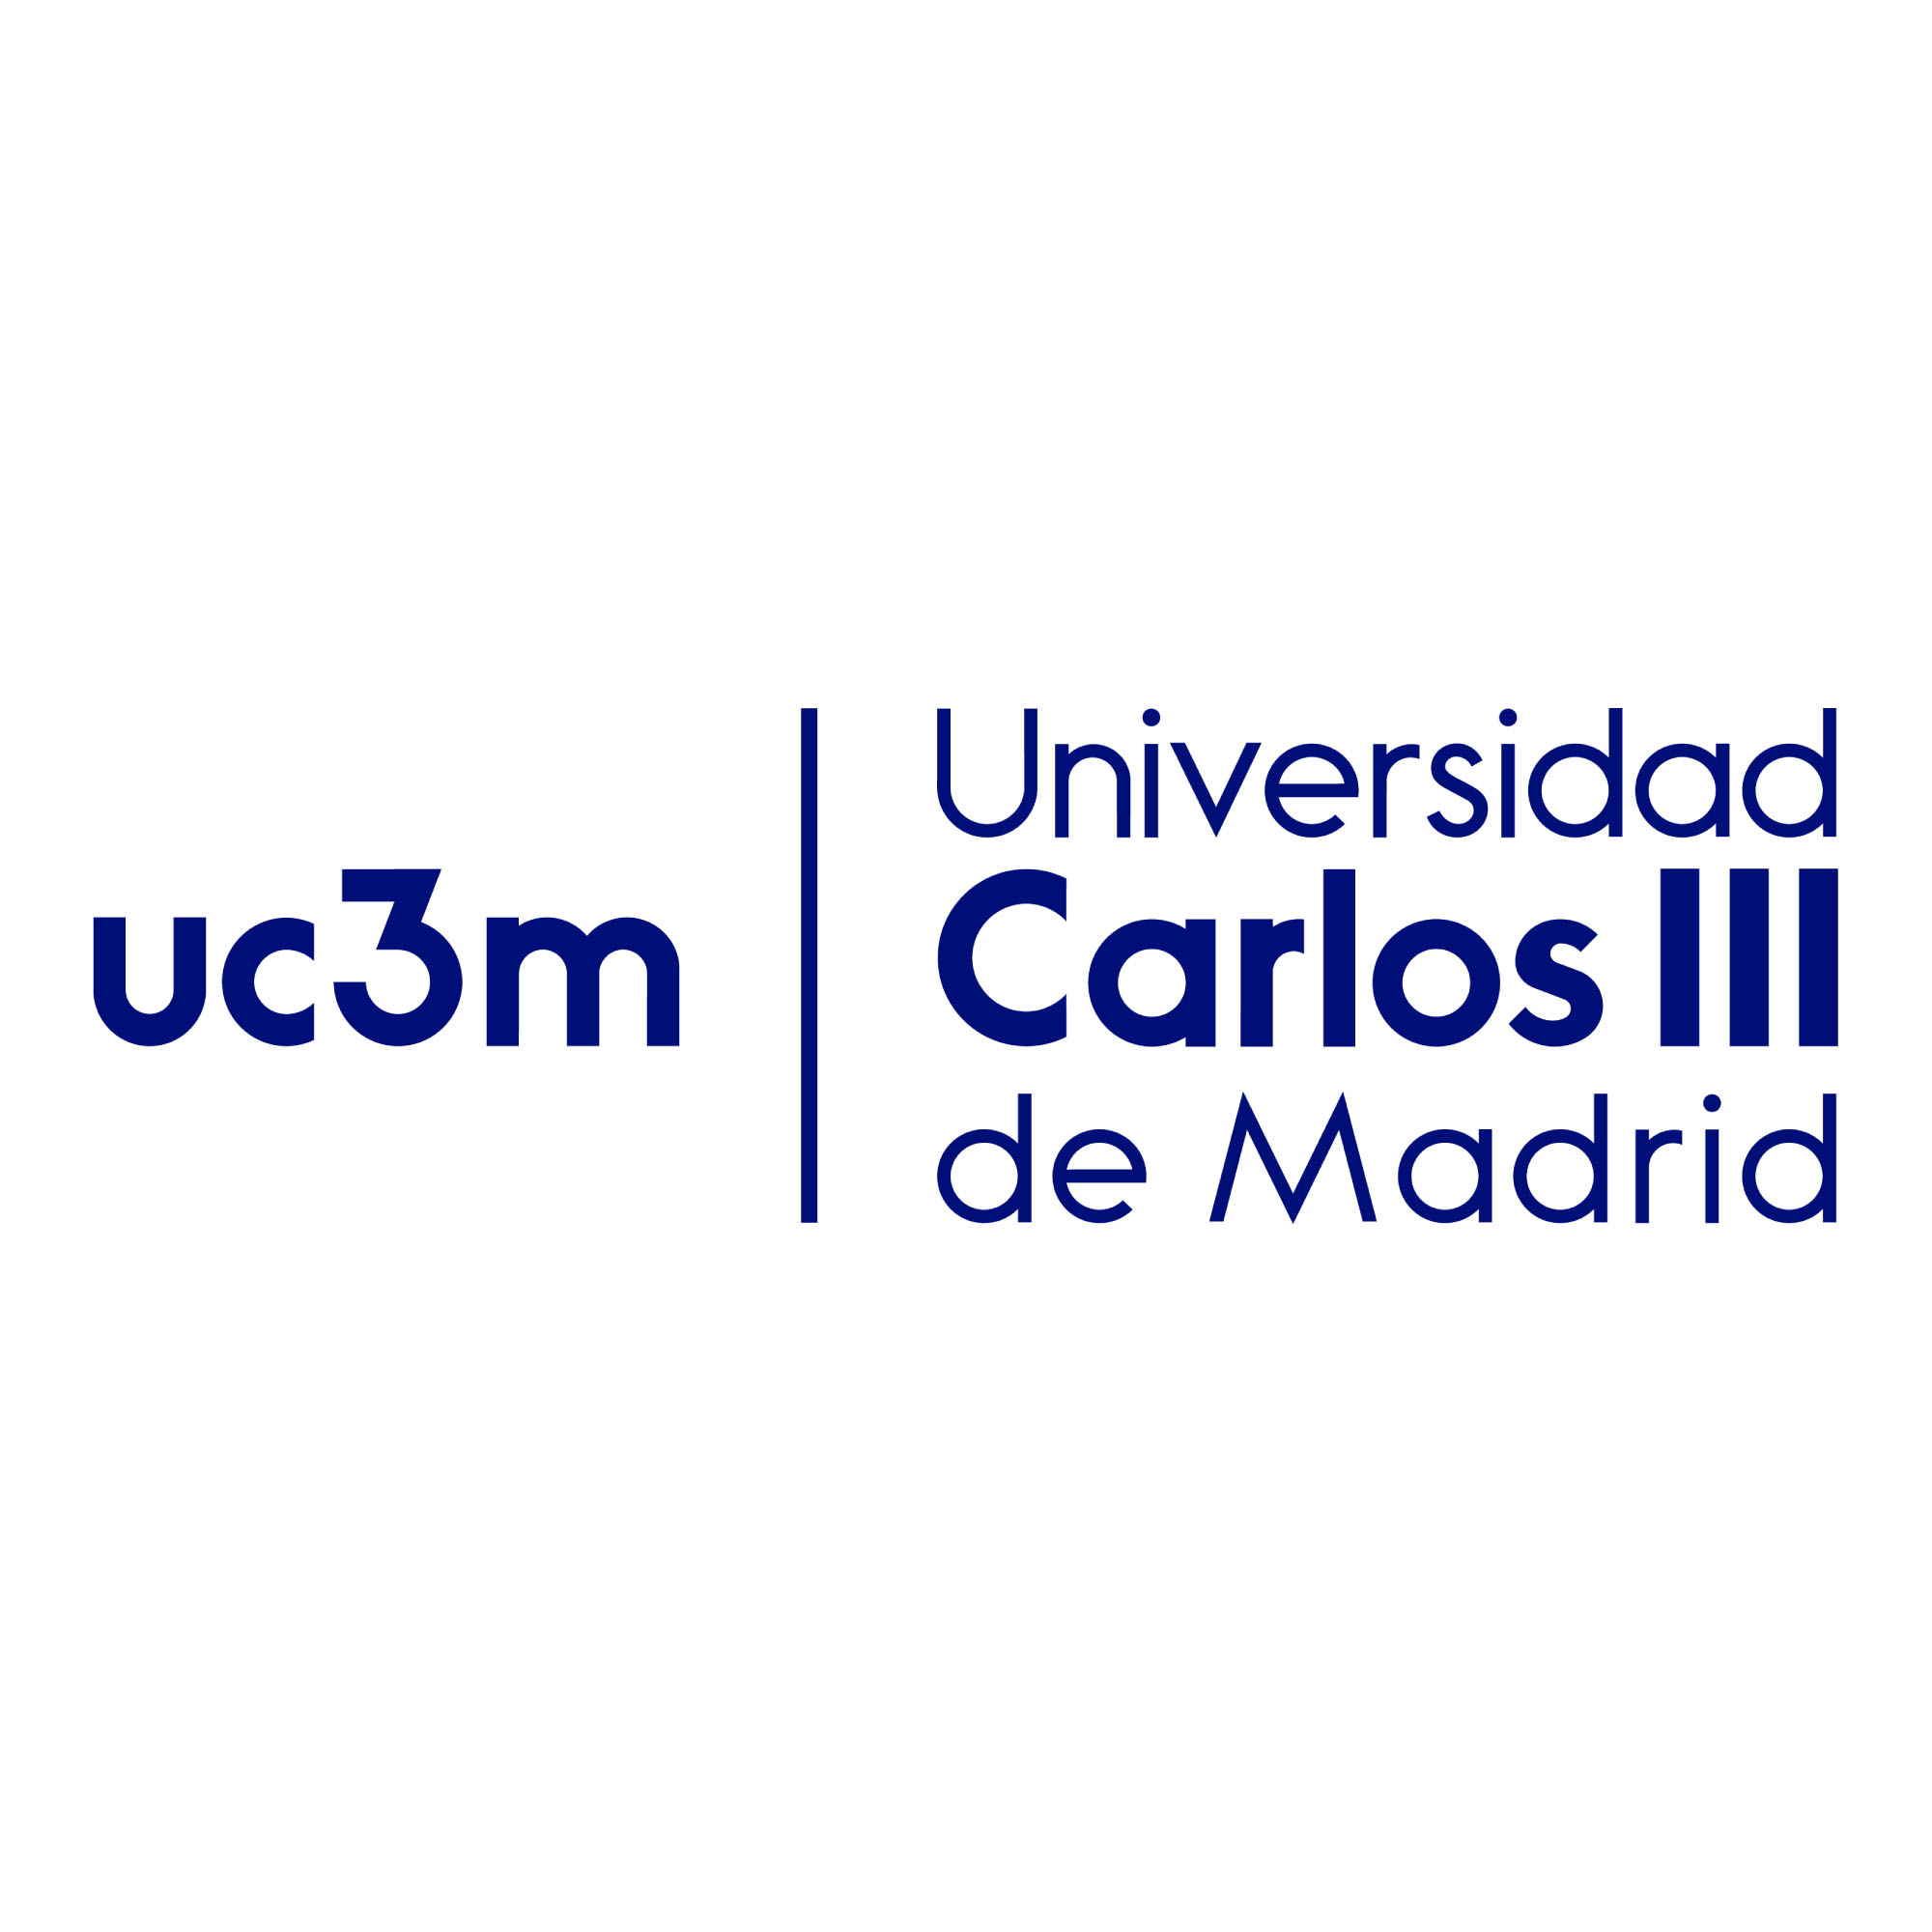 universidadcarlos3